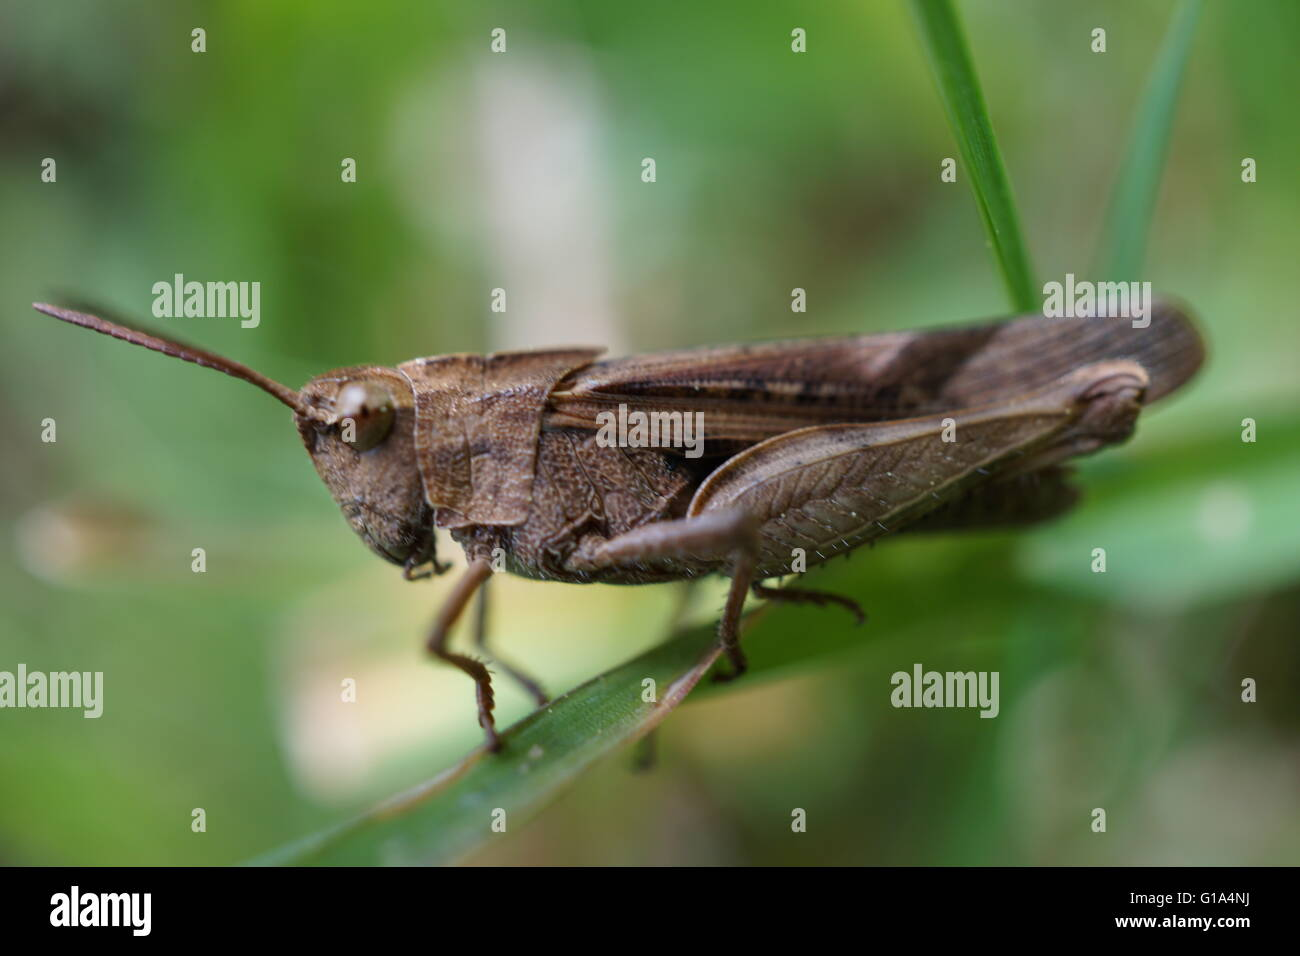 Macro shot of a grasshopper on a blade of grass. - Stock Image